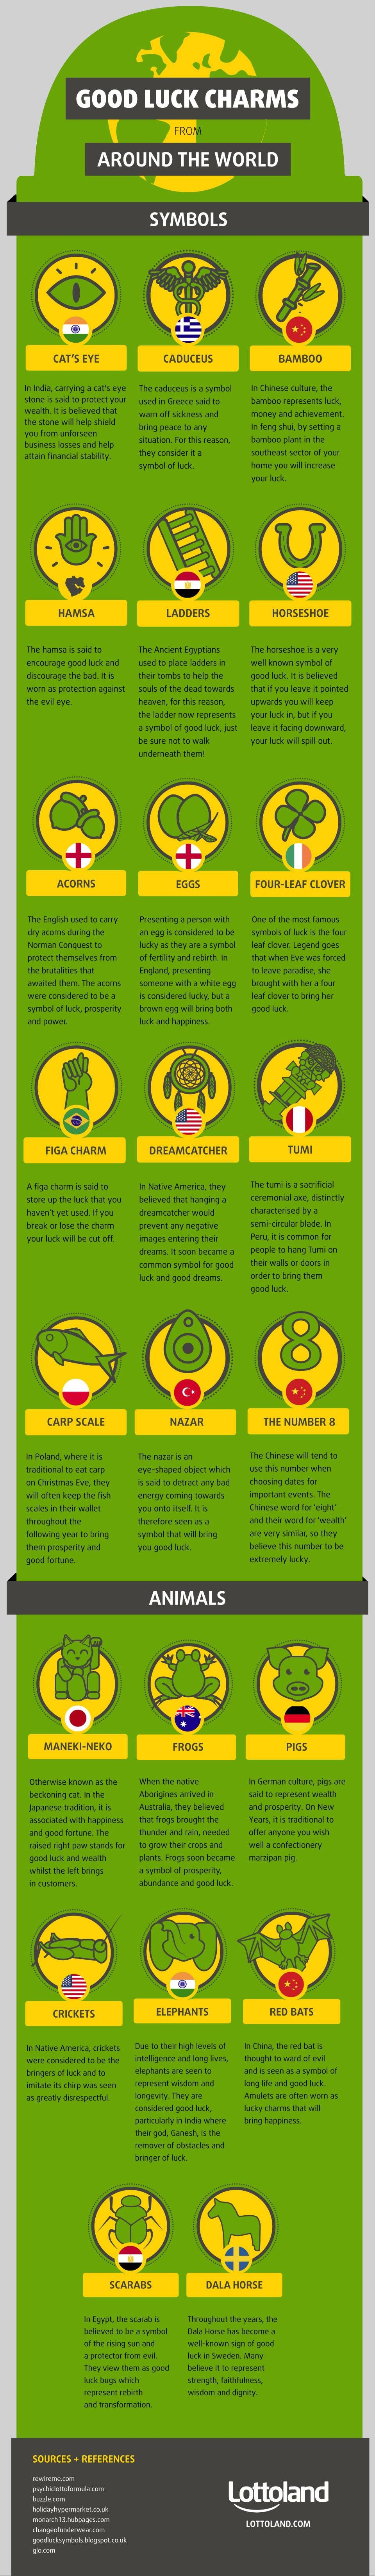 Good luck charms from around the world infographic travel good luck charms from around the world infographic travel goodluckcharms buycottarizona